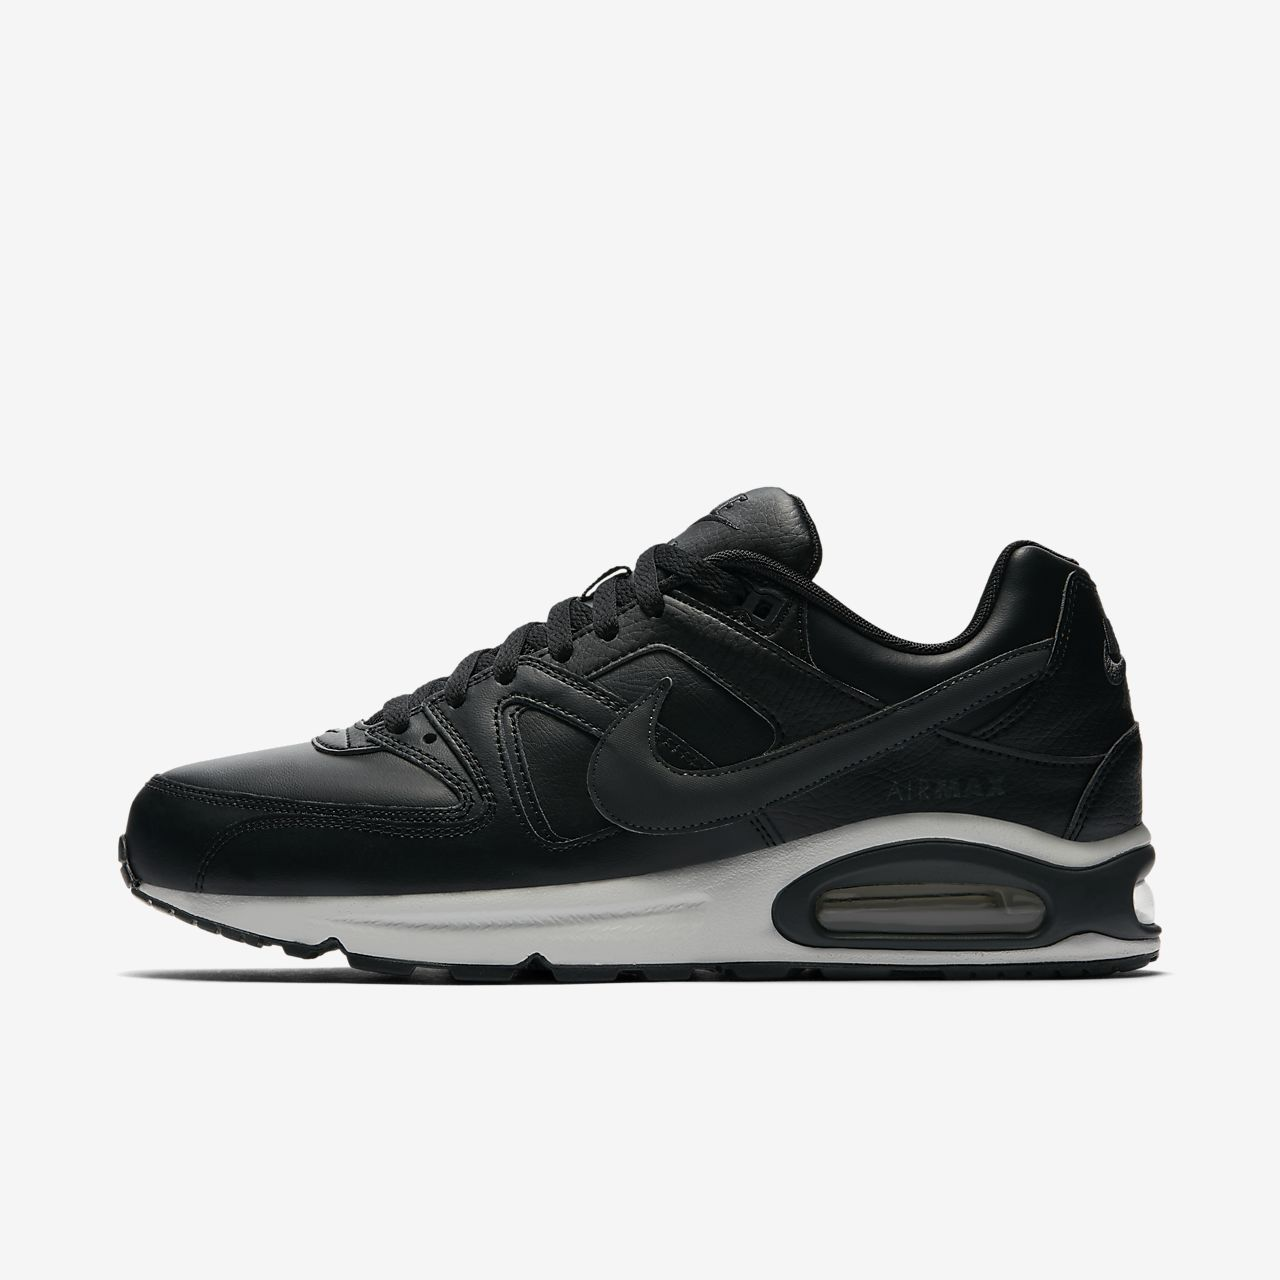 hot sale online 3b296 0ec20 Nike Air Max Command Zapatillas - Hombre